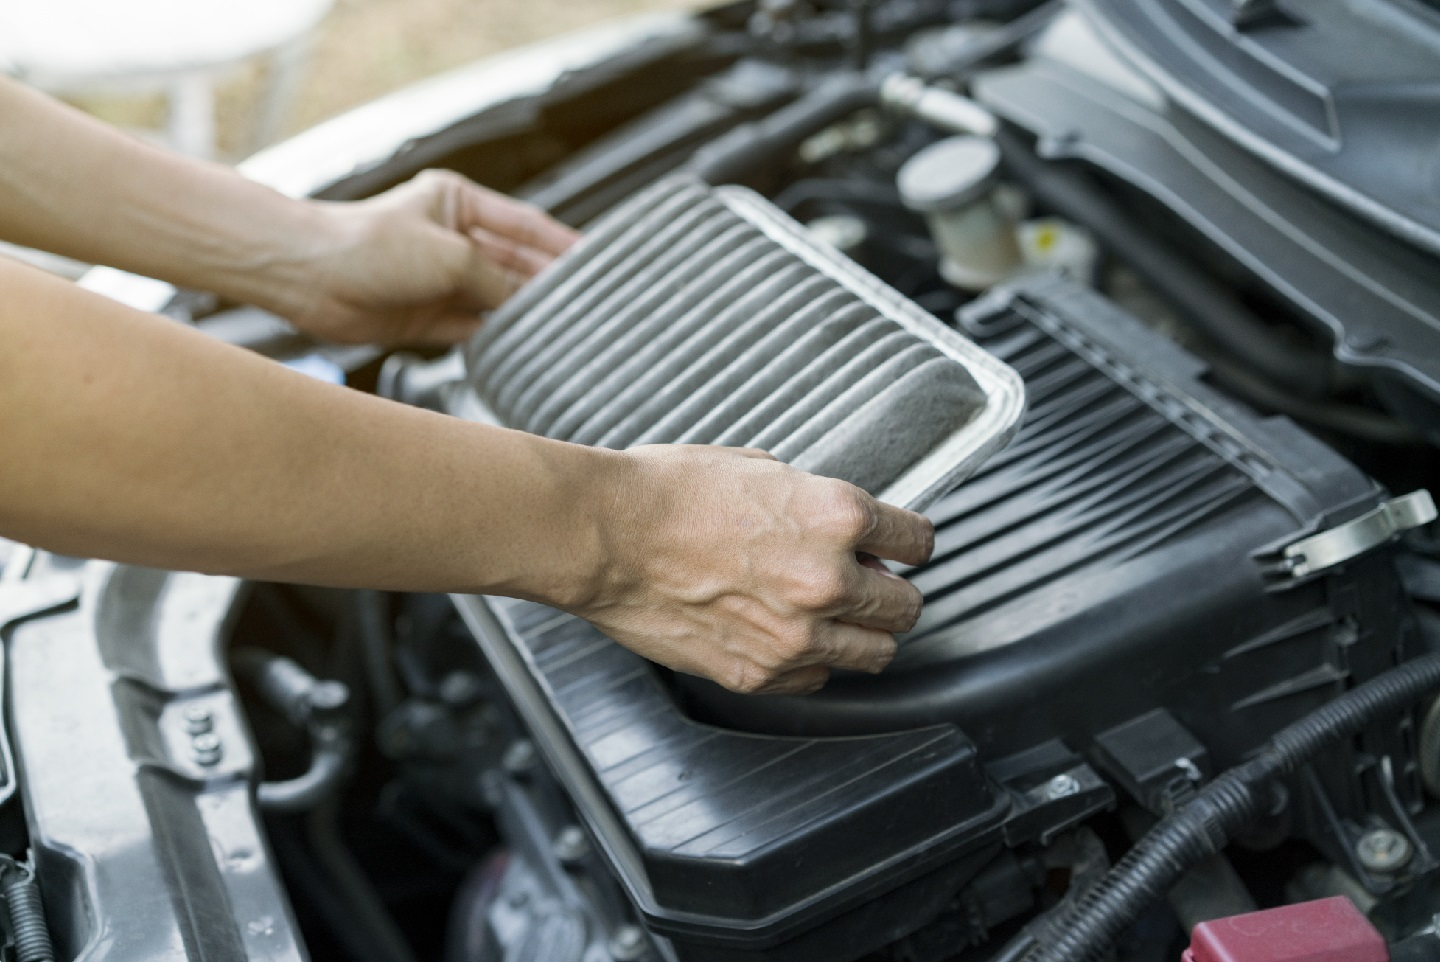 Man removing car air filter from engine